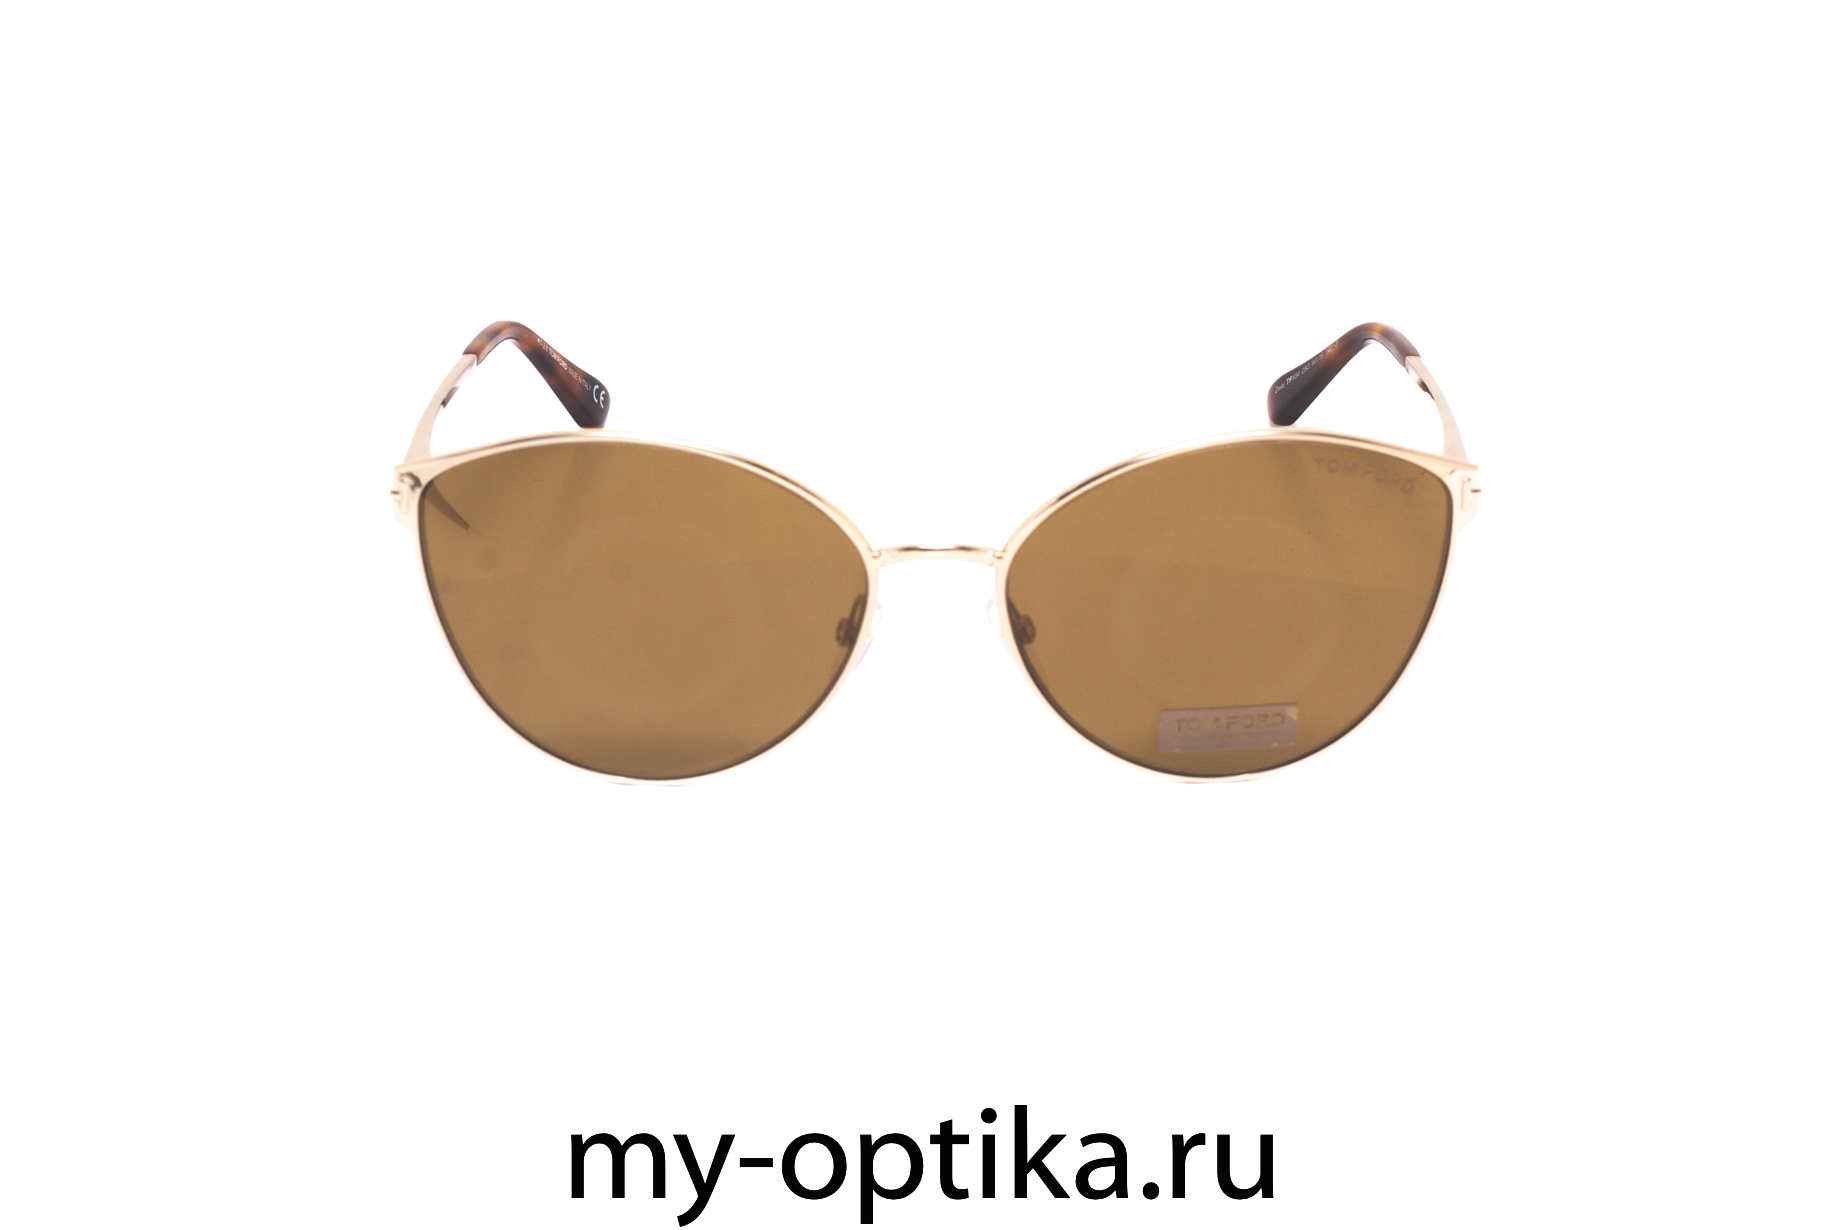 Очки Tom Ford 654 28G Zella